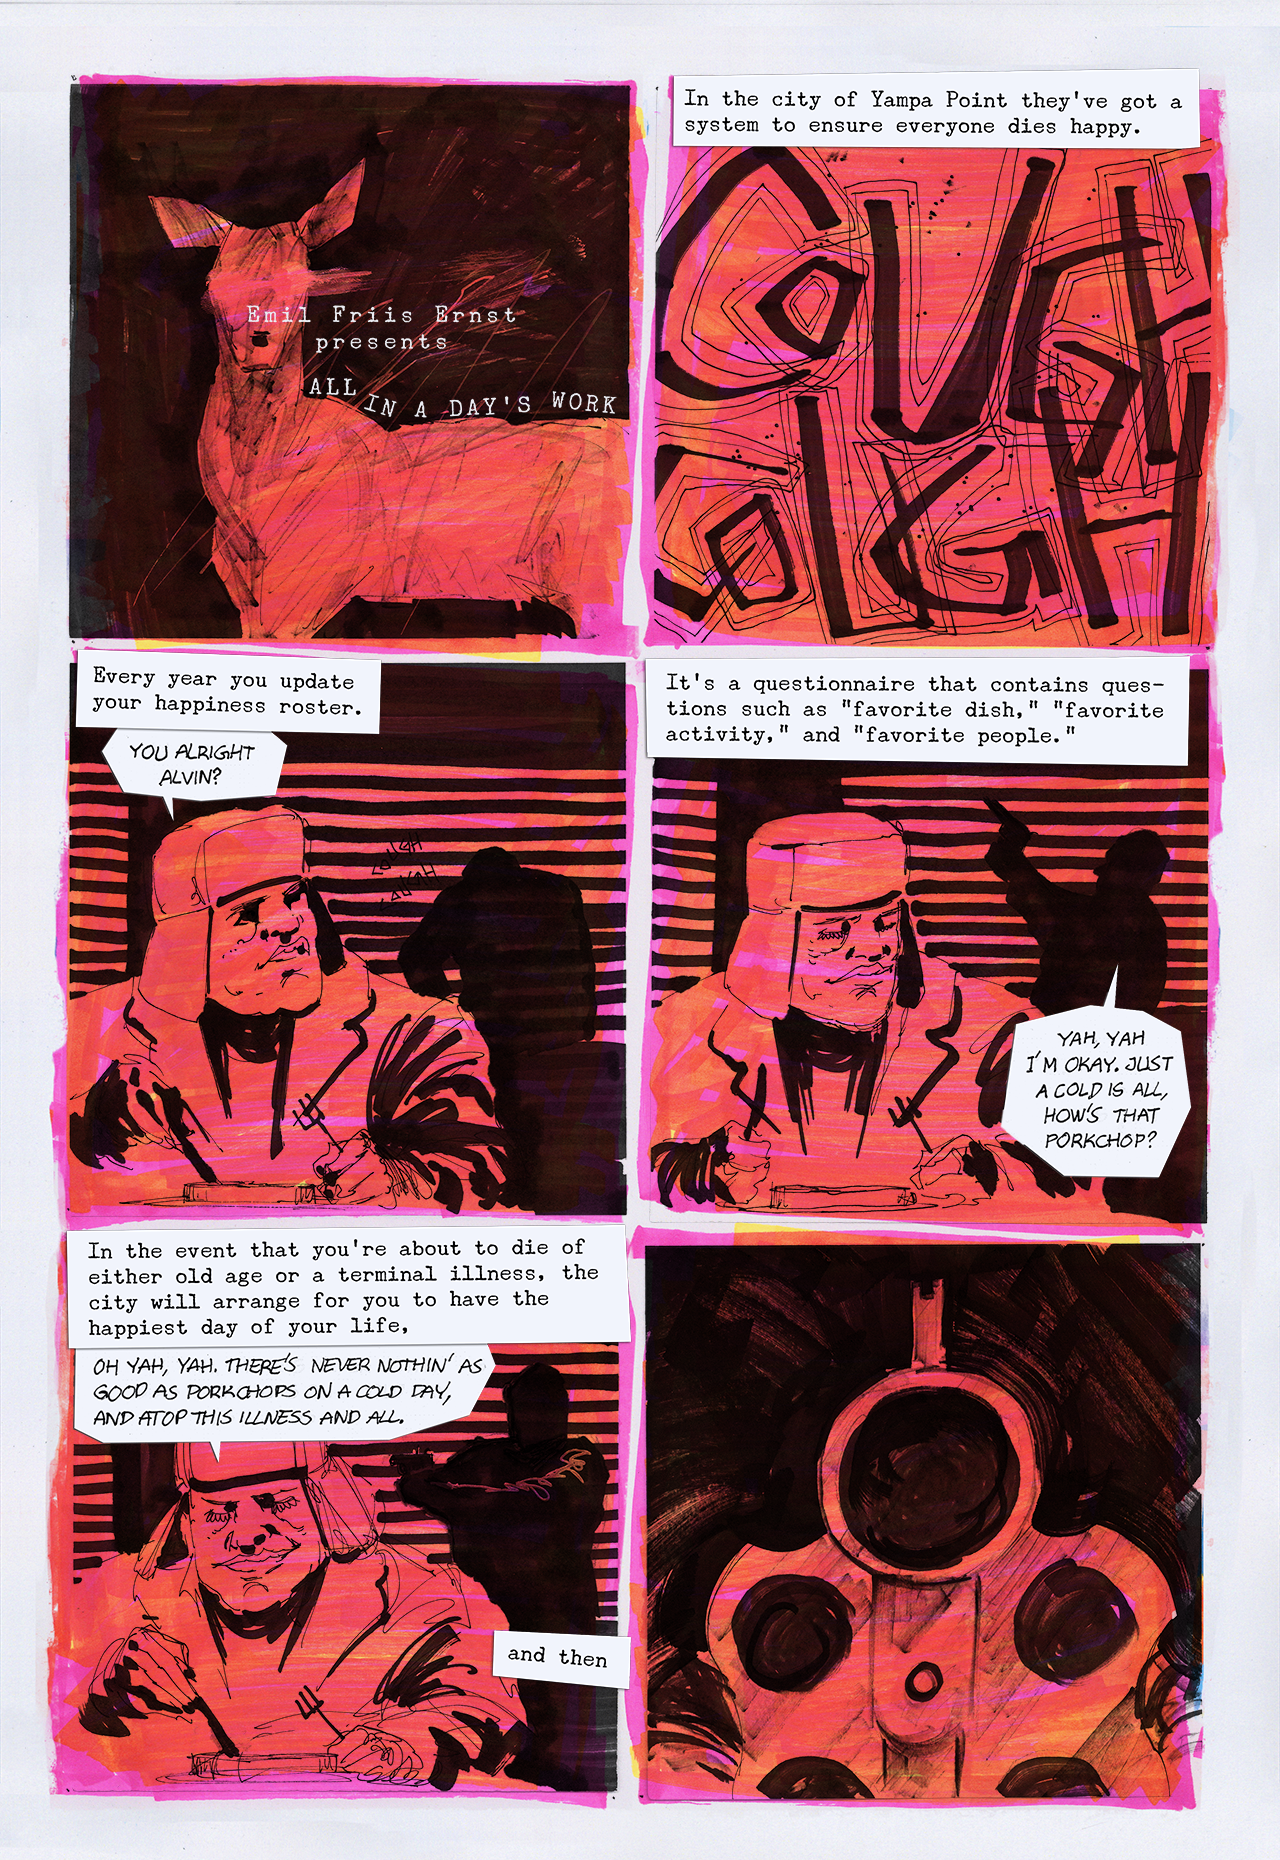 All in a Day's Work - Page 1